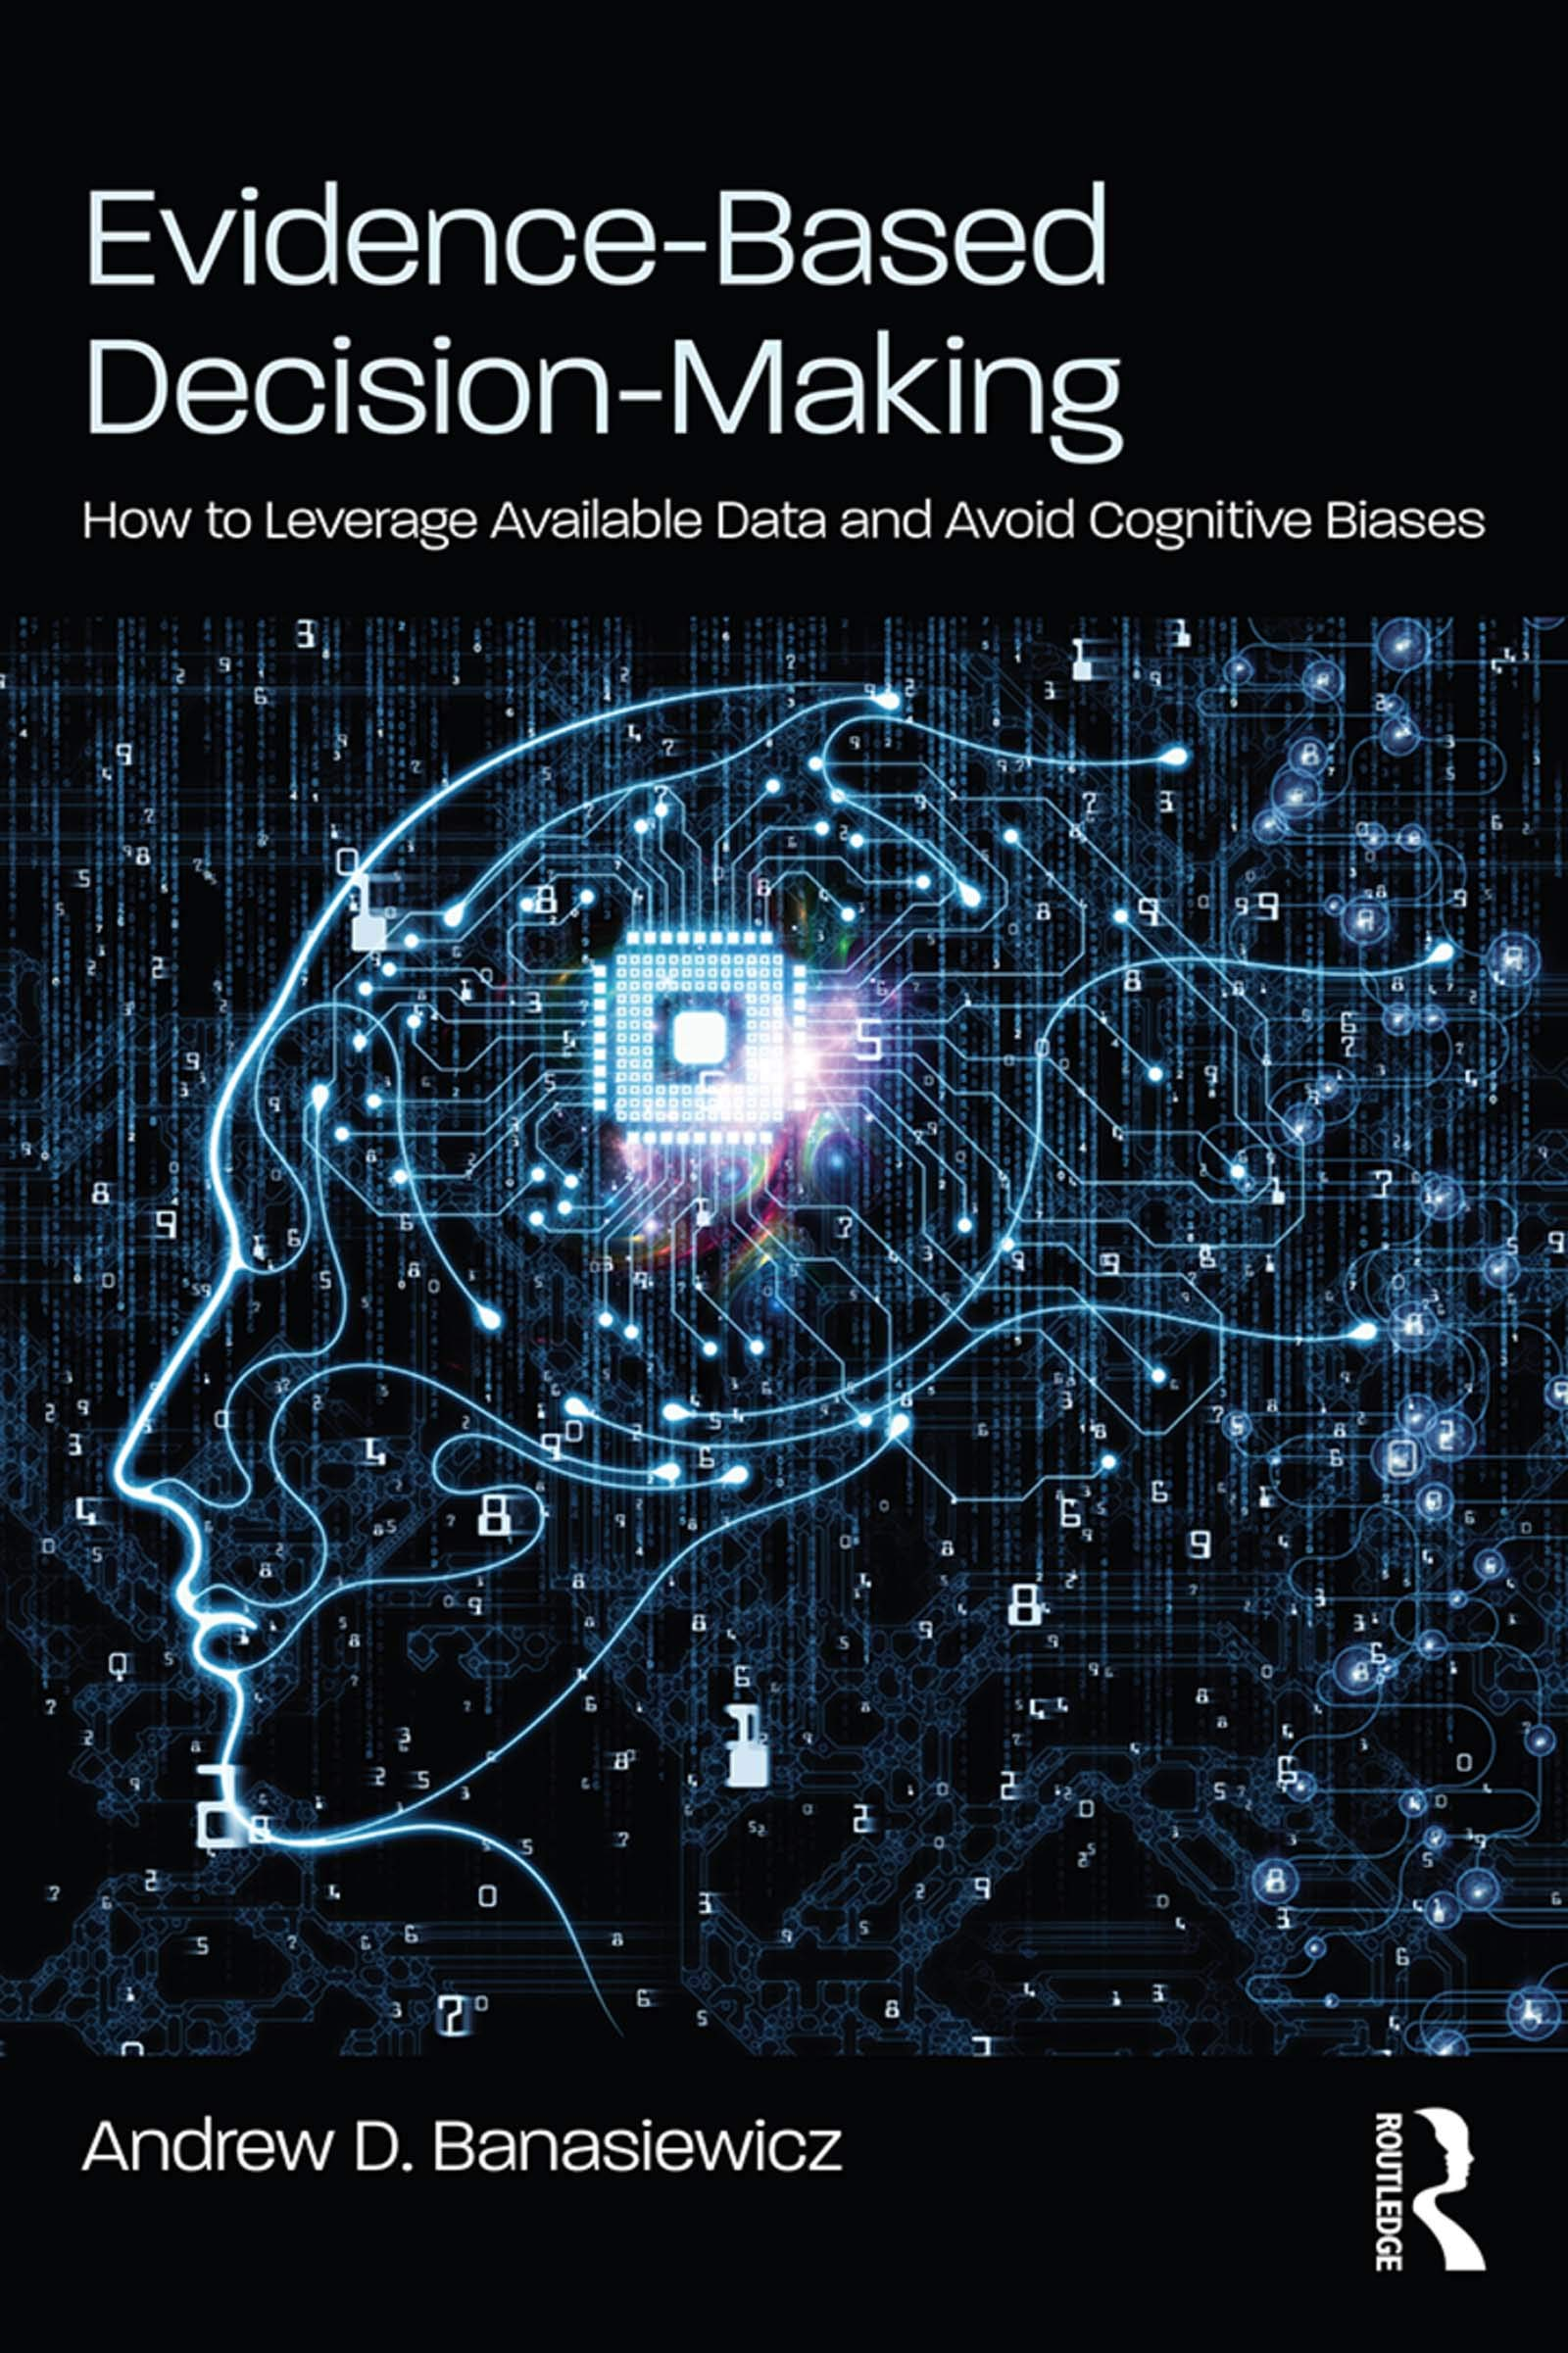 Evidence-Based Decision-Making: How to Leverage Available Data and Avoid Cognitive Biases